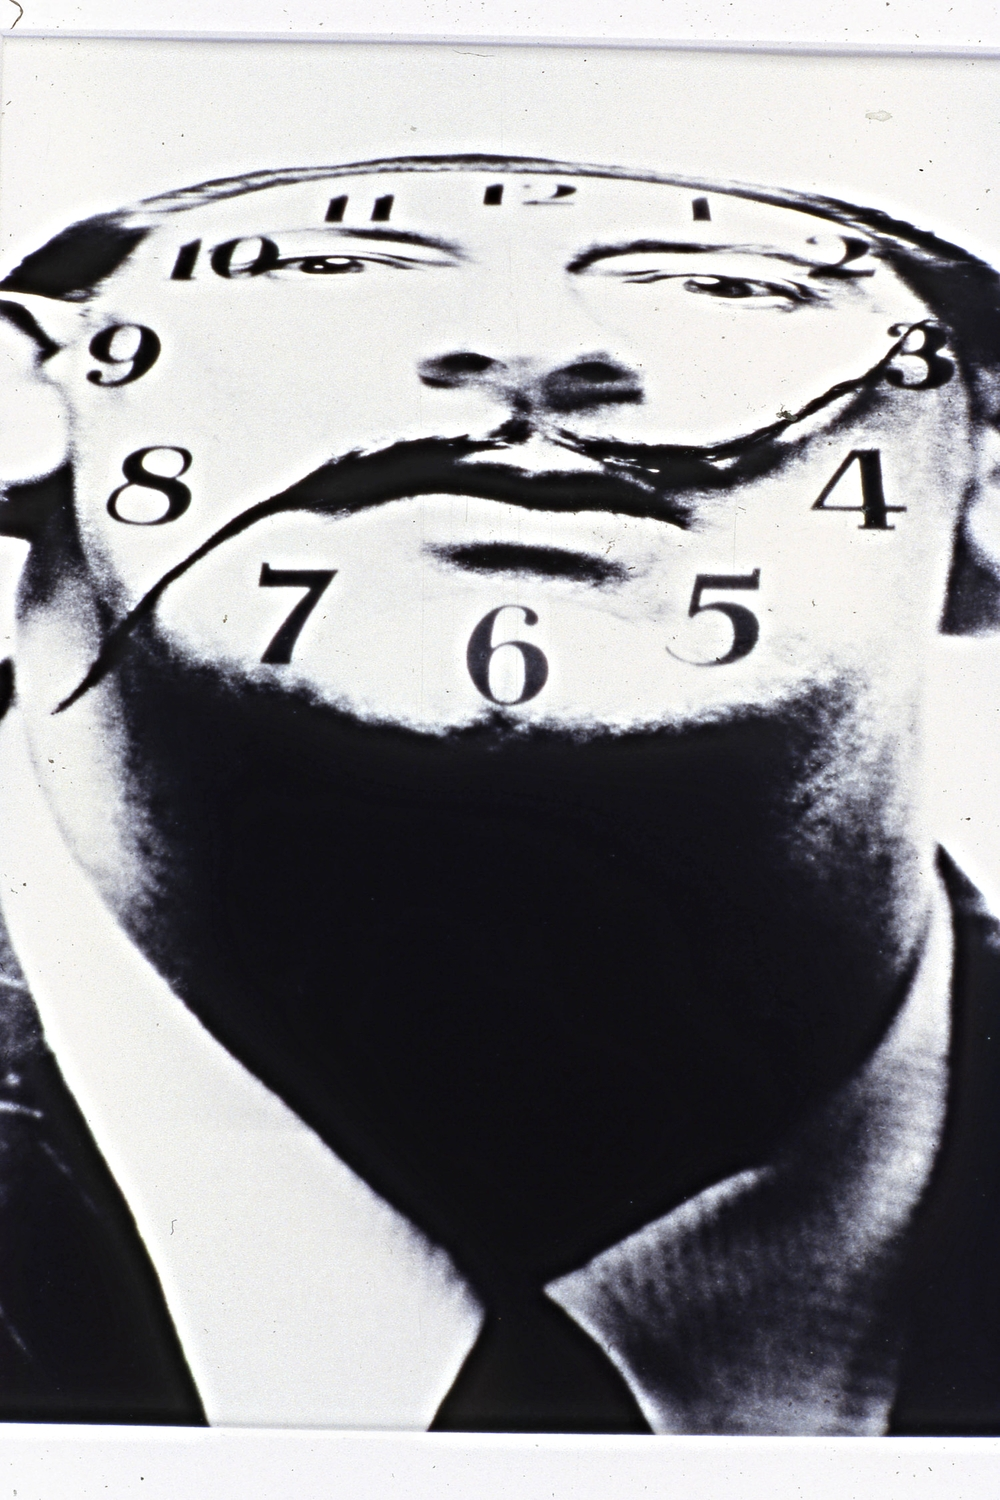 1MB_clock_face-4.jpg